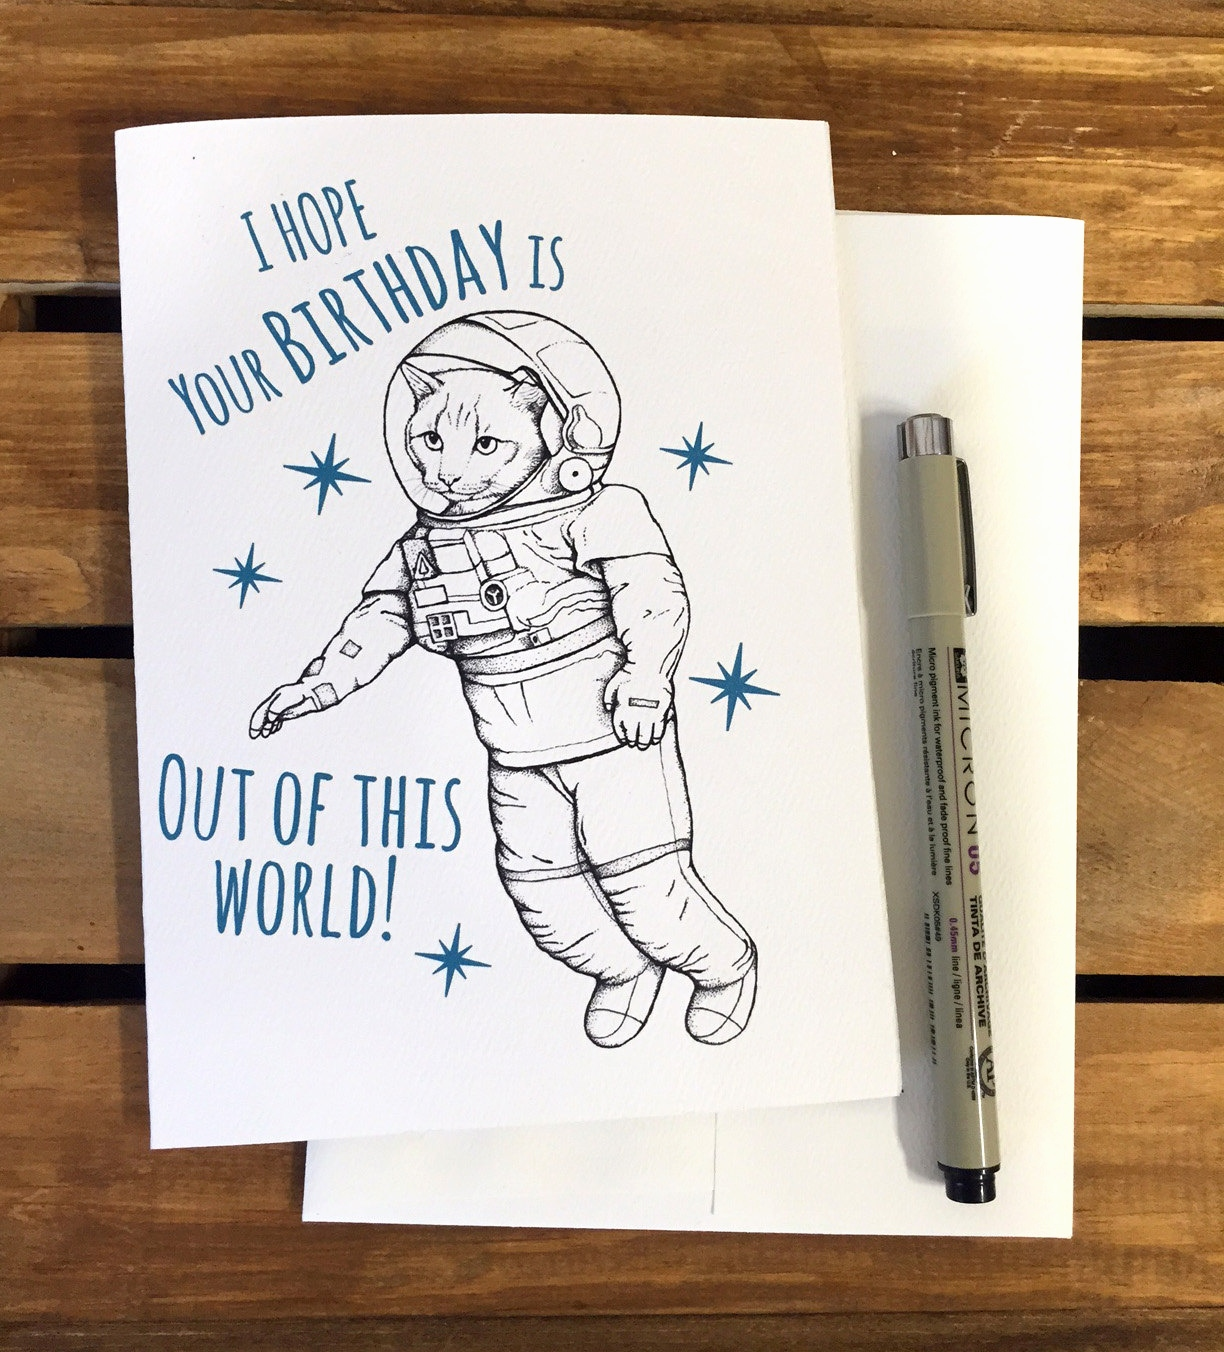 good drawings for birthday cards ; easy-birthday-card-drawings-elegant-birthday-card-some-good-unique-birthday-cards-unique-birthday-of-easy-birthday-card-drawings